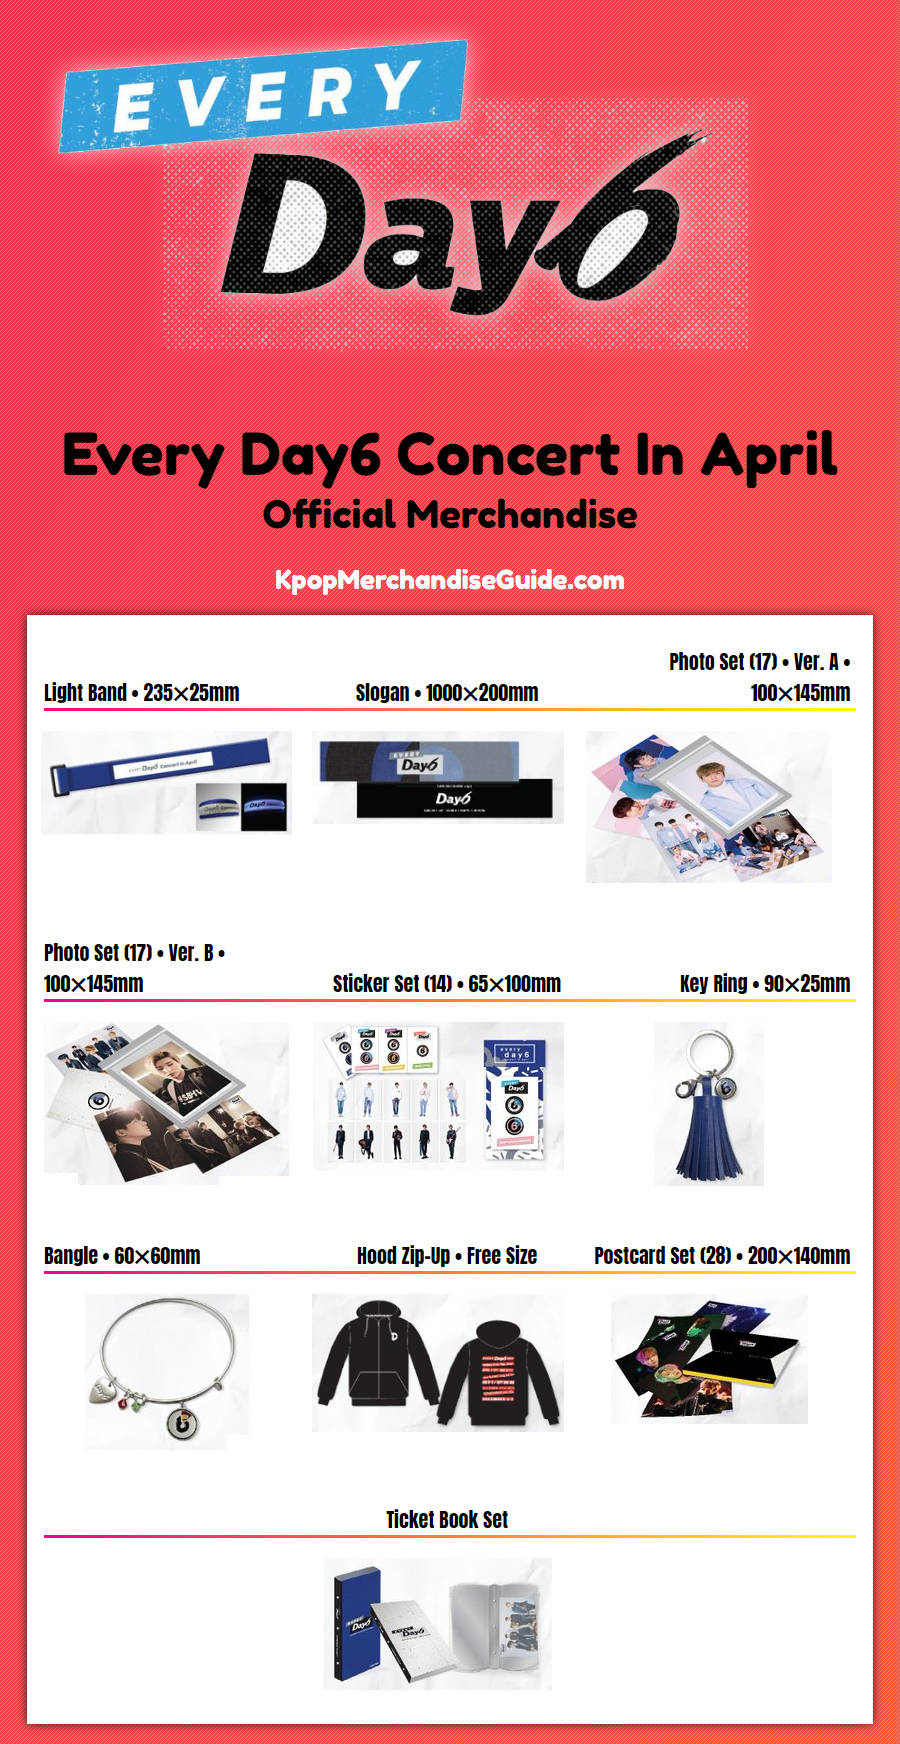 every day6 concert in april merchandise